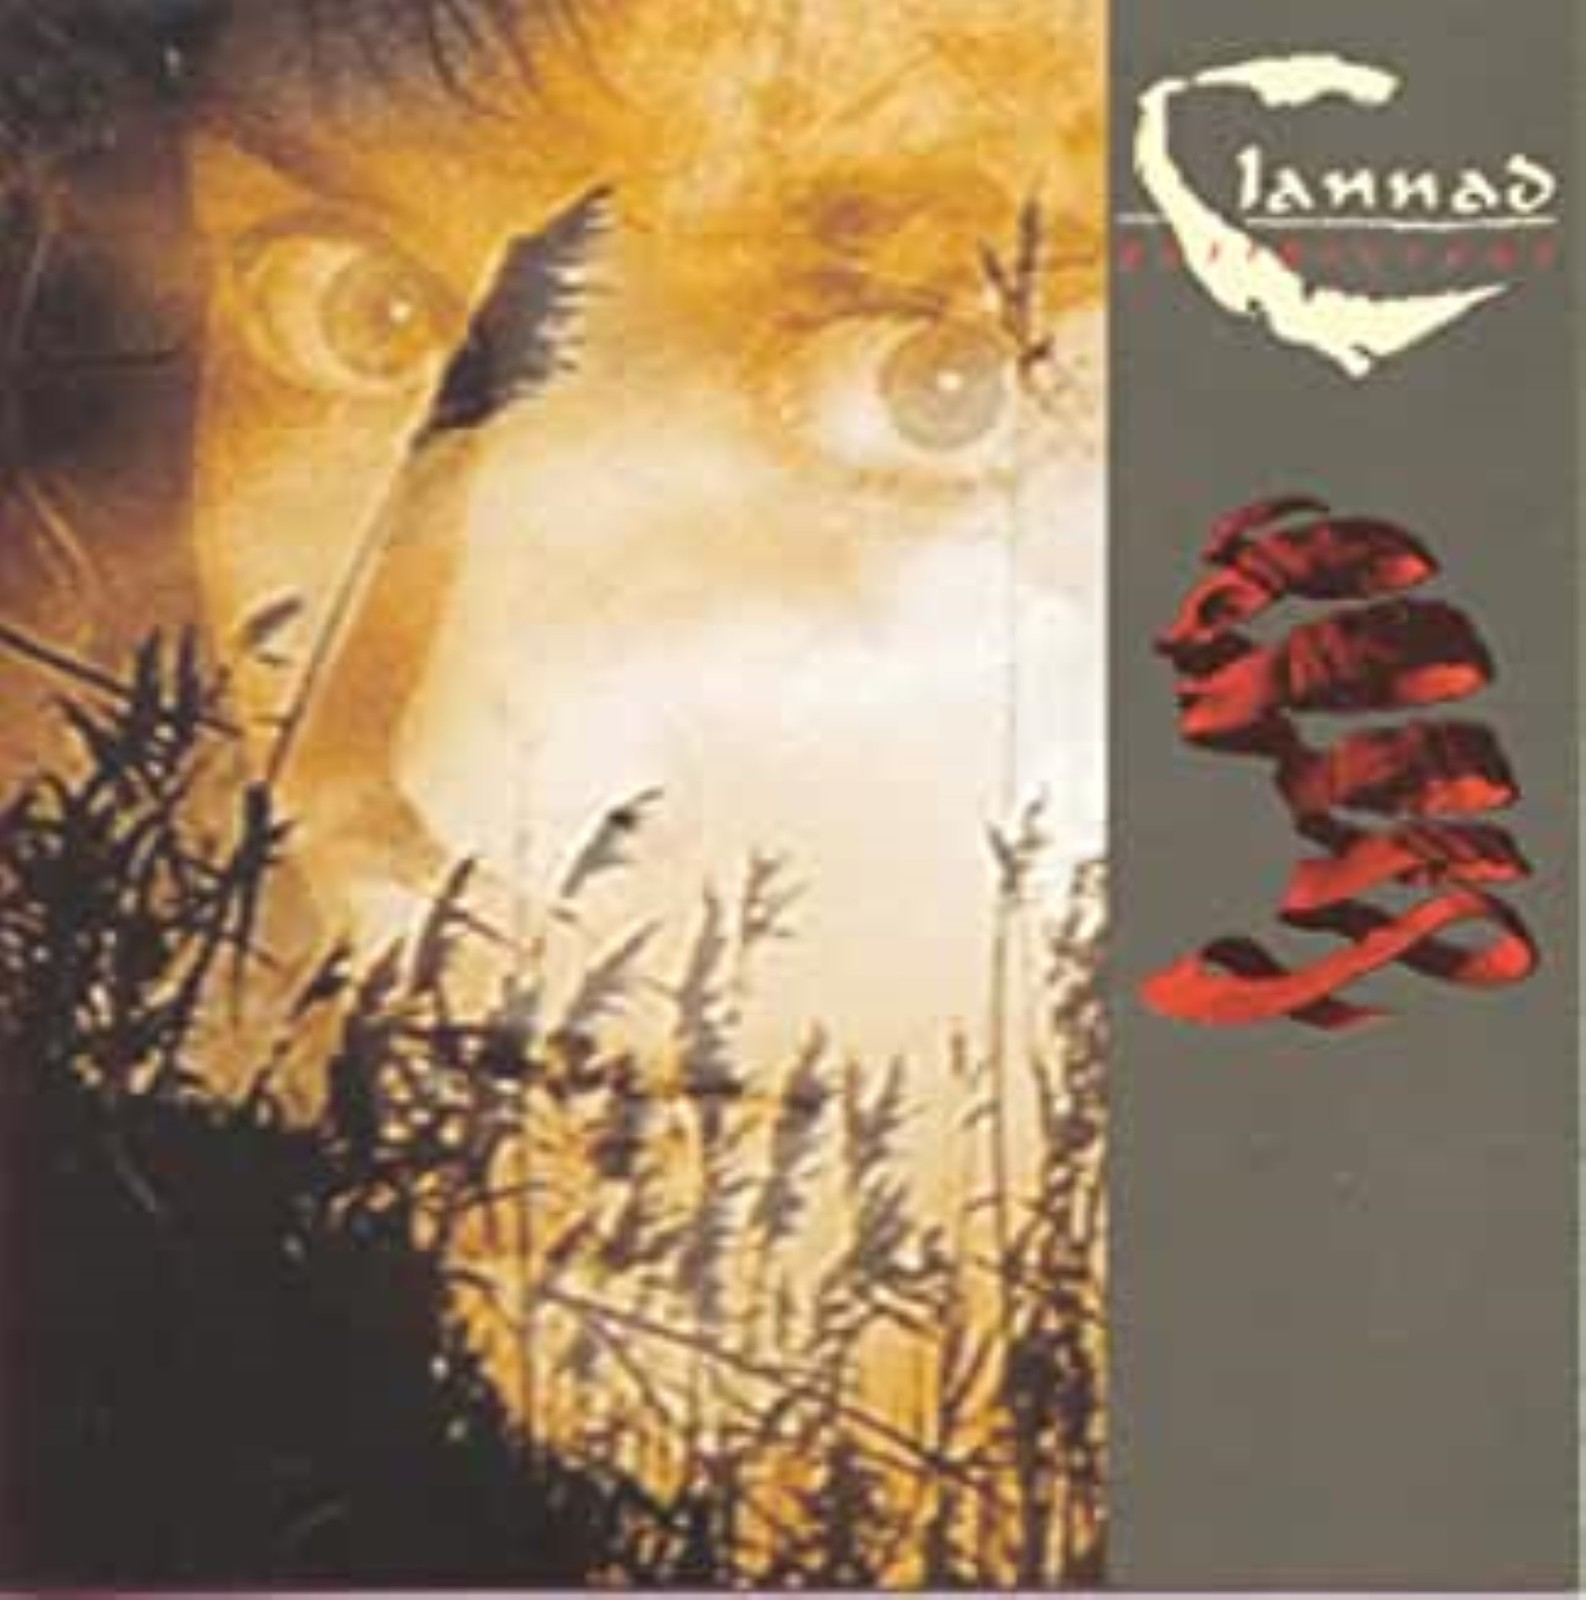 Past Present by Clannad Cd